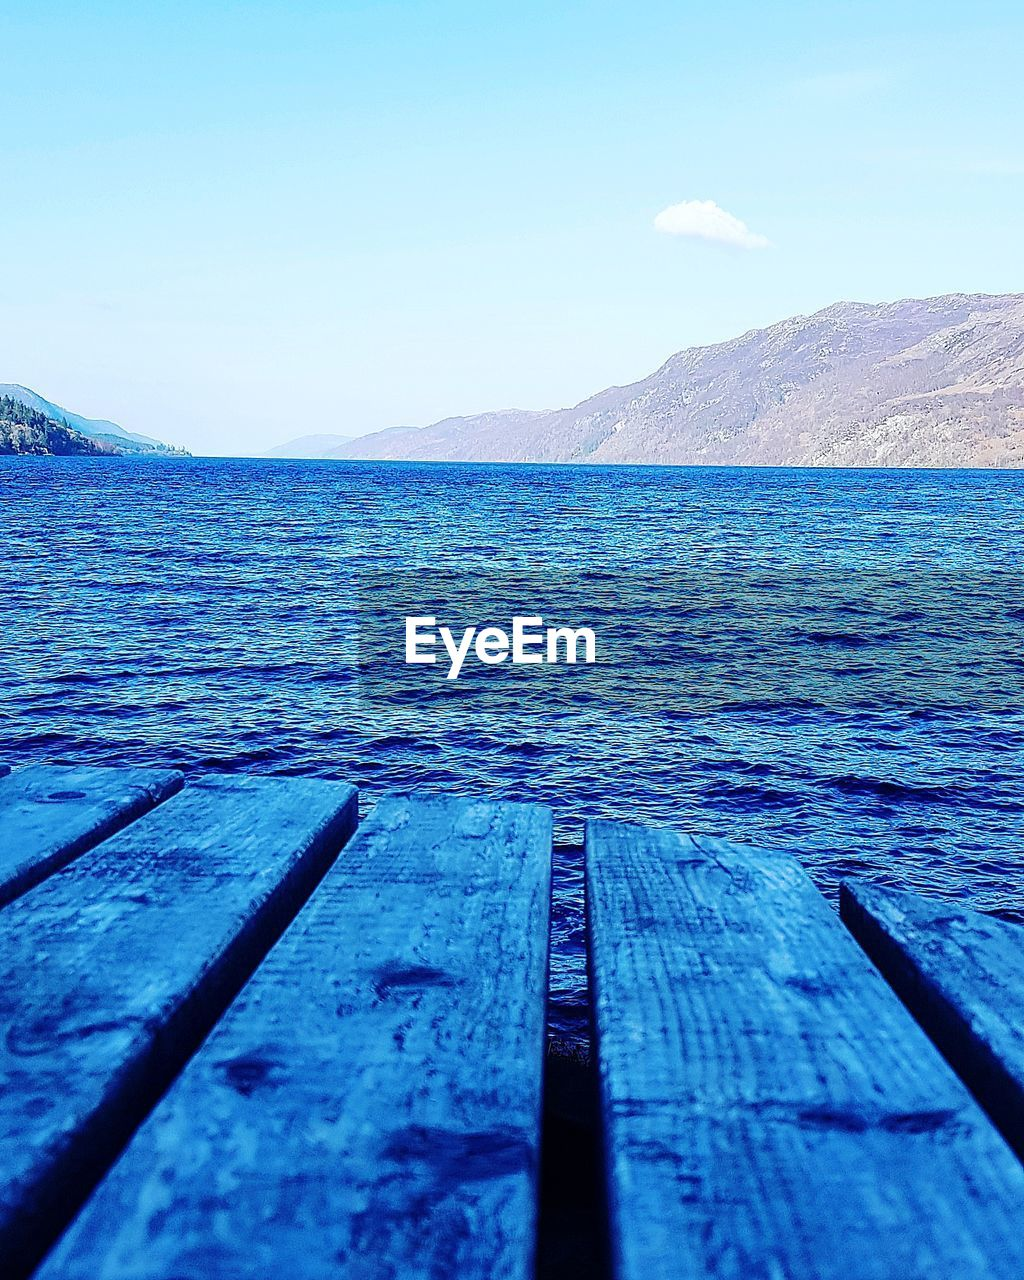 sky, water, scenics - nature, beauty in nature, wood - material, nature, blue, mountain, no people, tranquil scene, tranquility, day, sea, outdoors, pier, non-urban scene, clear sky, idyllic, surface level